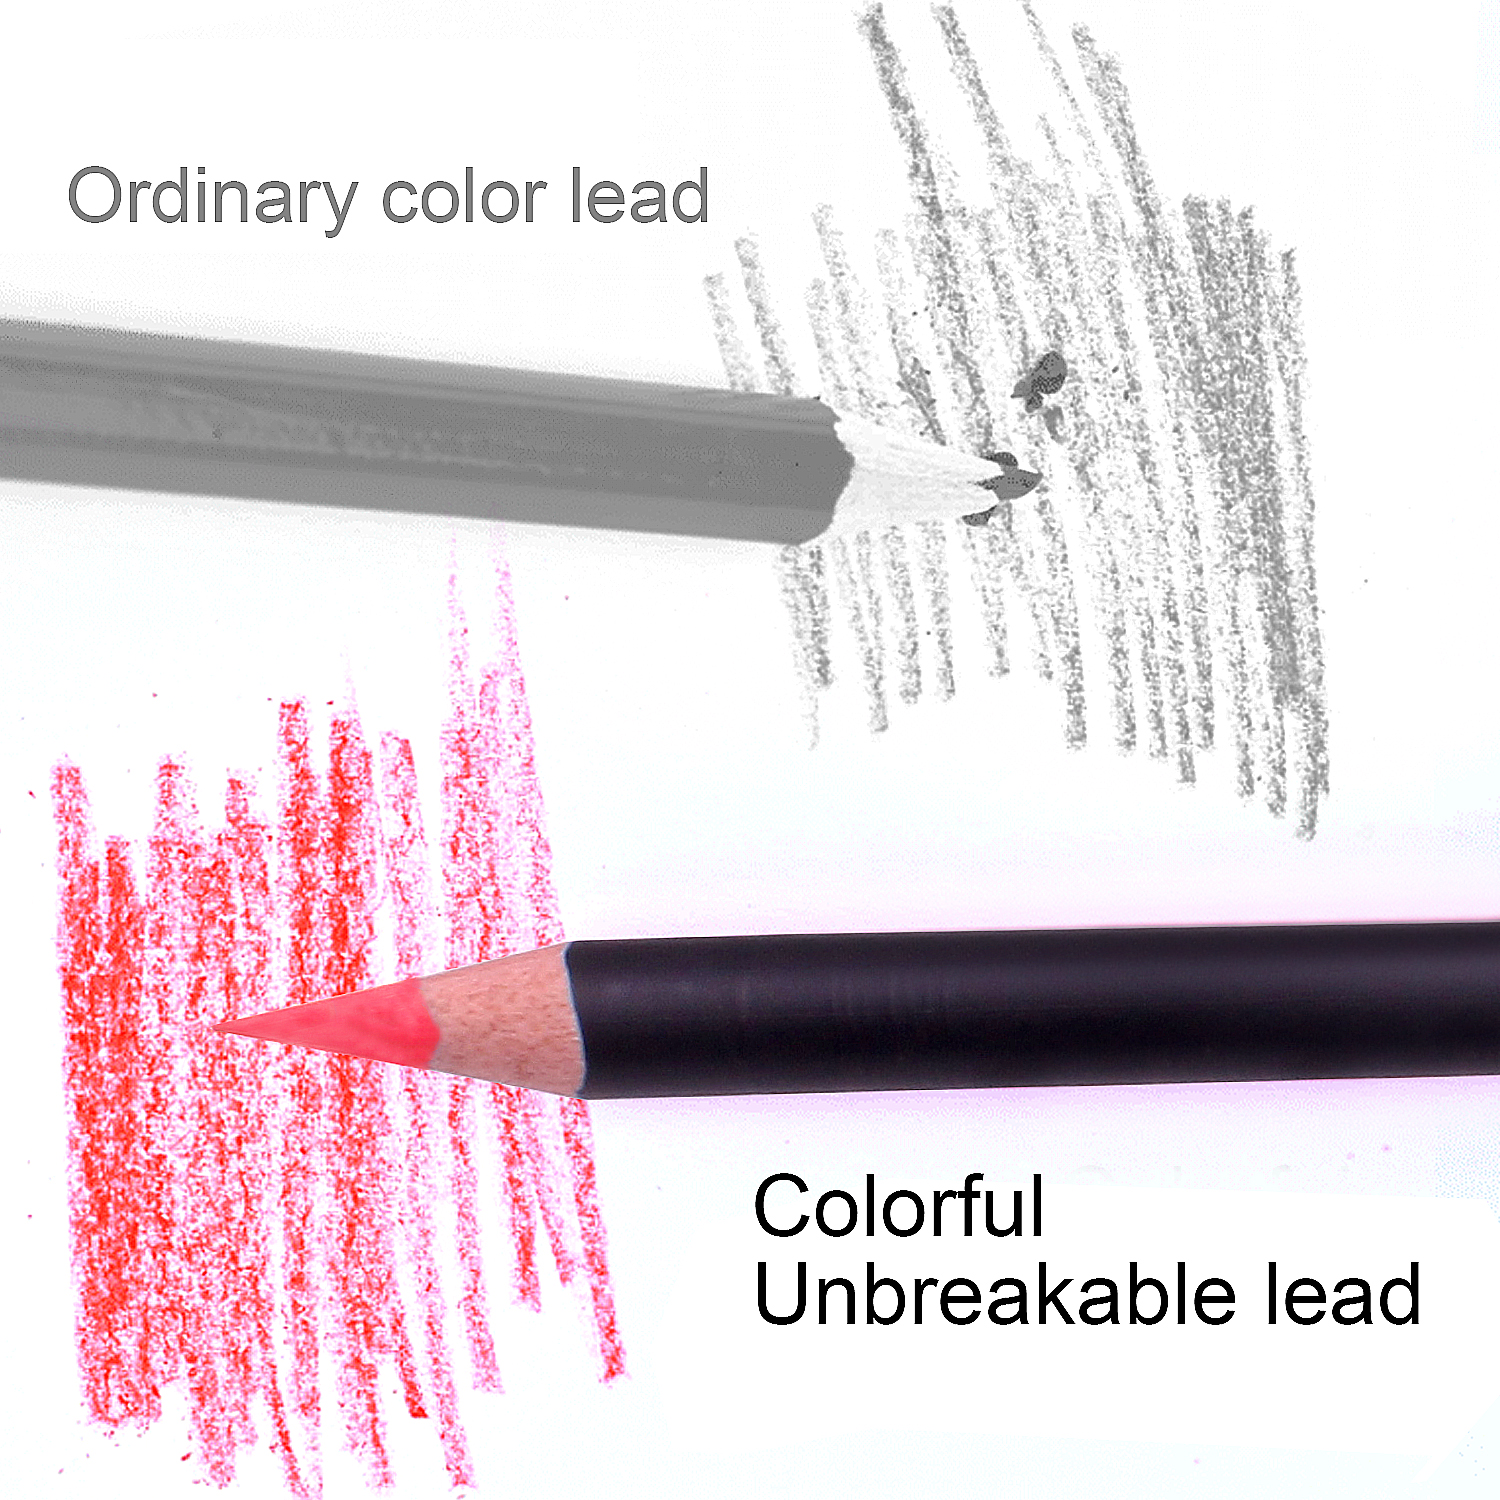 Colouring Pencils with Metal Box,180 Unique Coloured Pencils and Pre Sharpened Crayons for Coloring Book - Ideal Christmas Gift 5